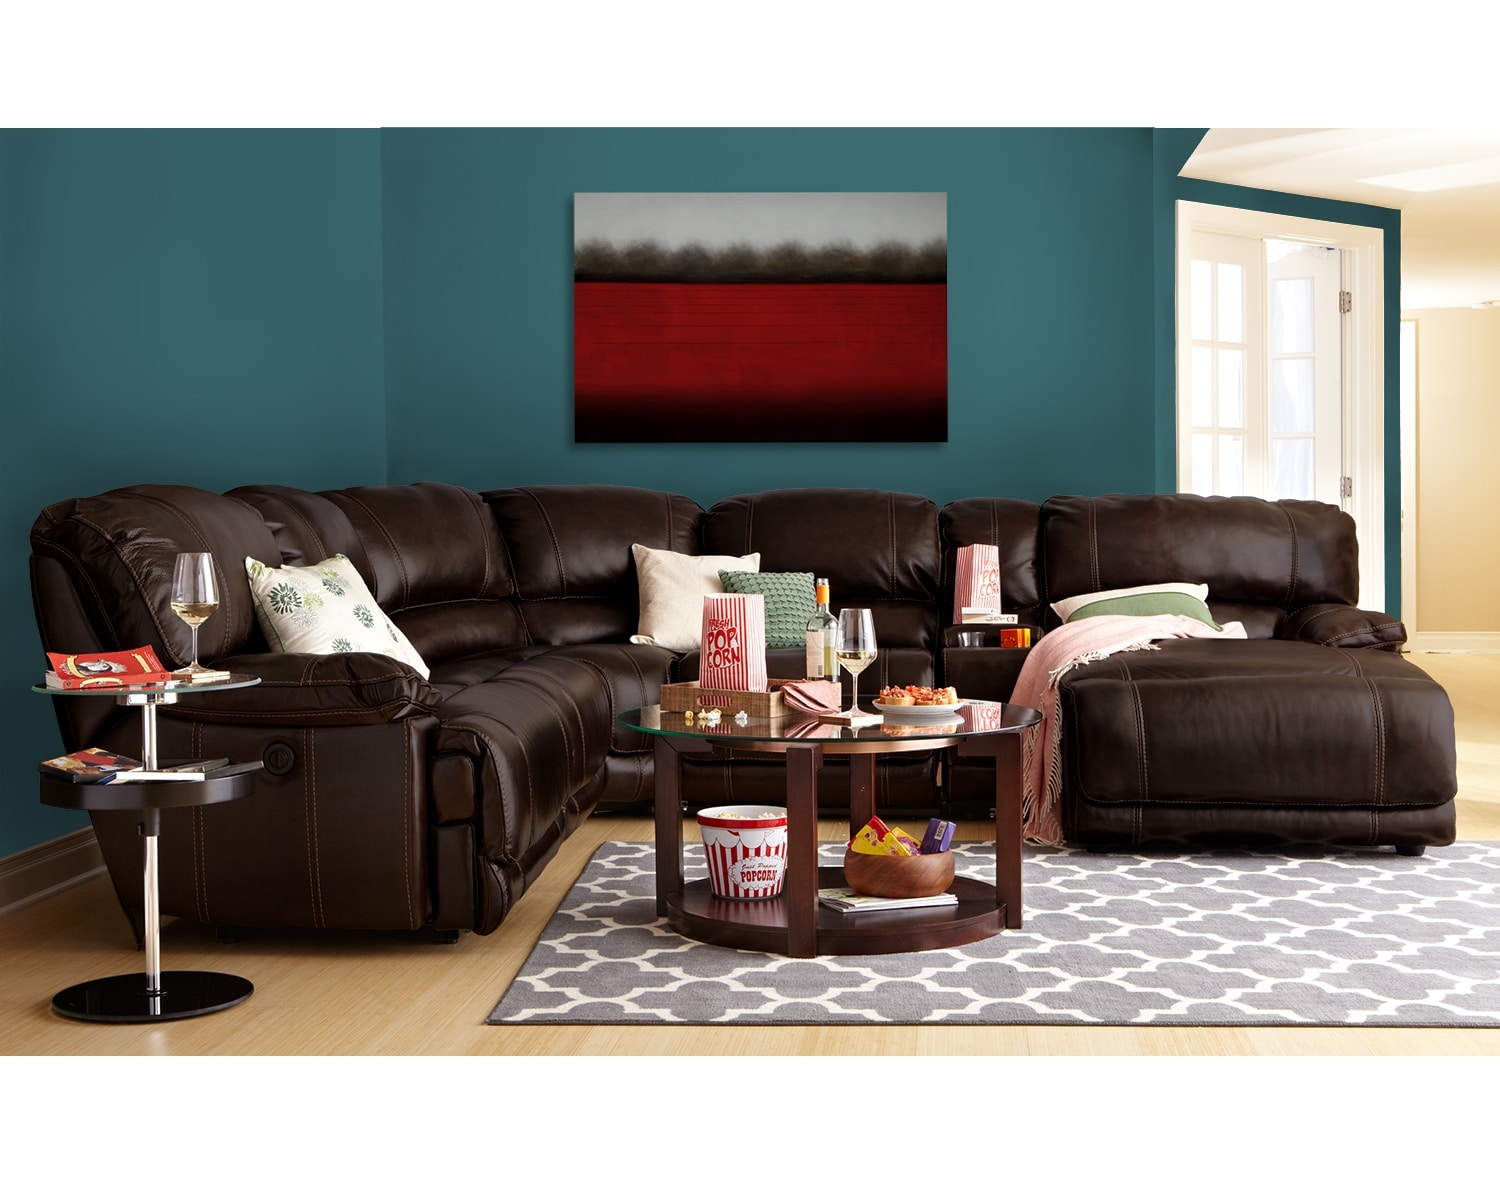 Living Room Furniture - The Clinton Brown Collection - 6 Pc. Power Reclining Sectional